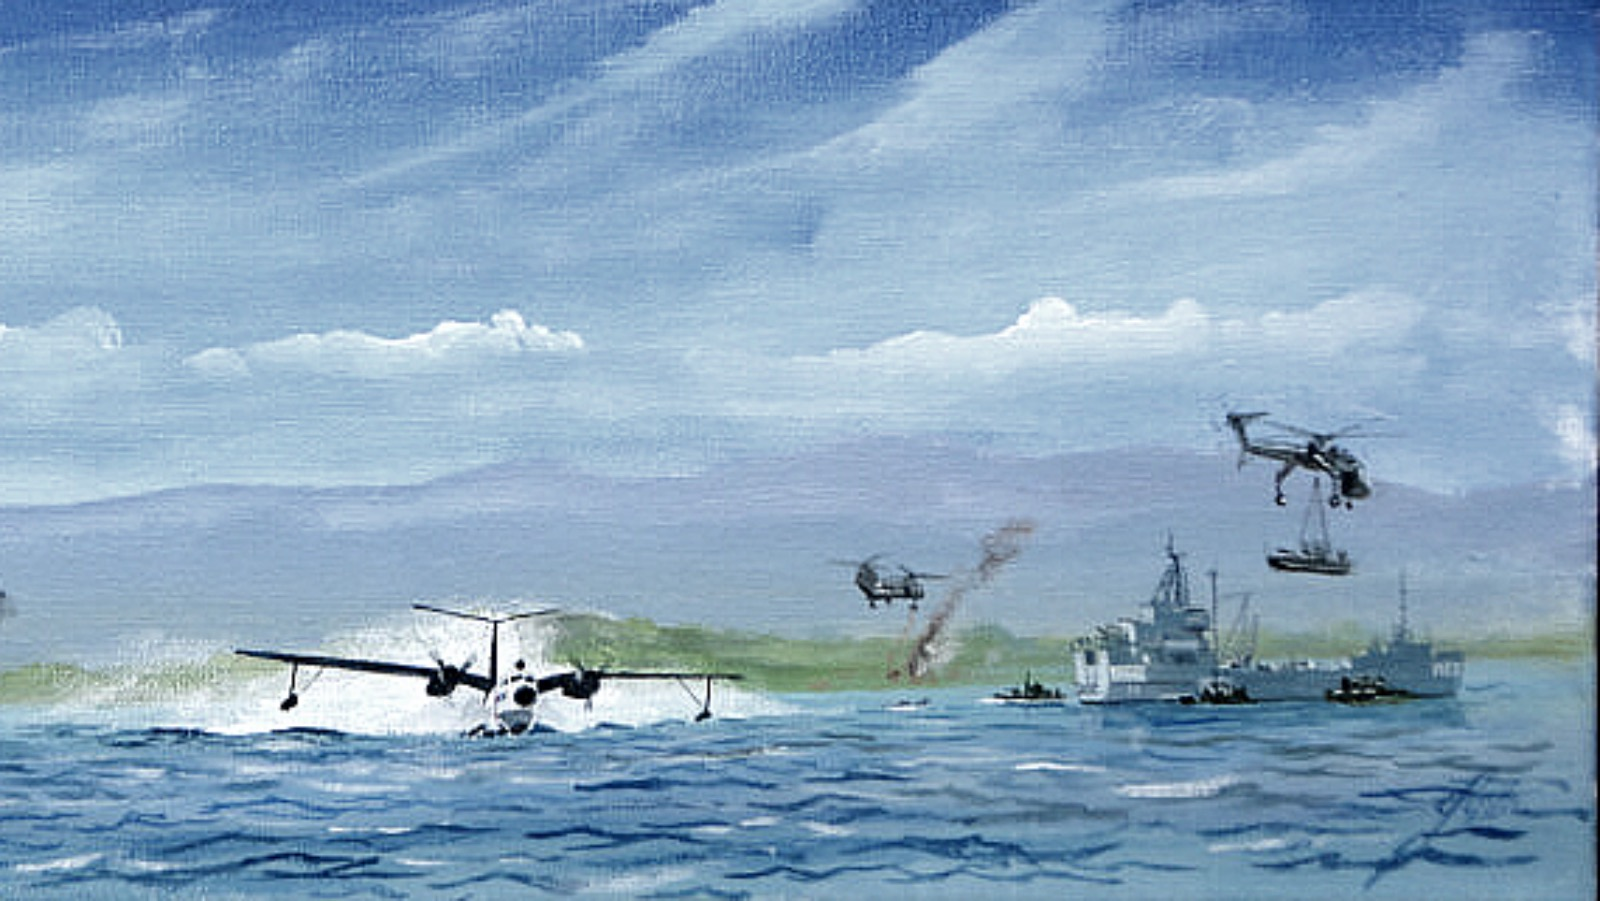 Cam Ranh Bay circ 1967. USS Currytuck CGC Half Moon and LST 1166. Two P5M Marlins, a Sky Crane and a Sea Knight 91521848_1486783281501966_1831204863367708672_o